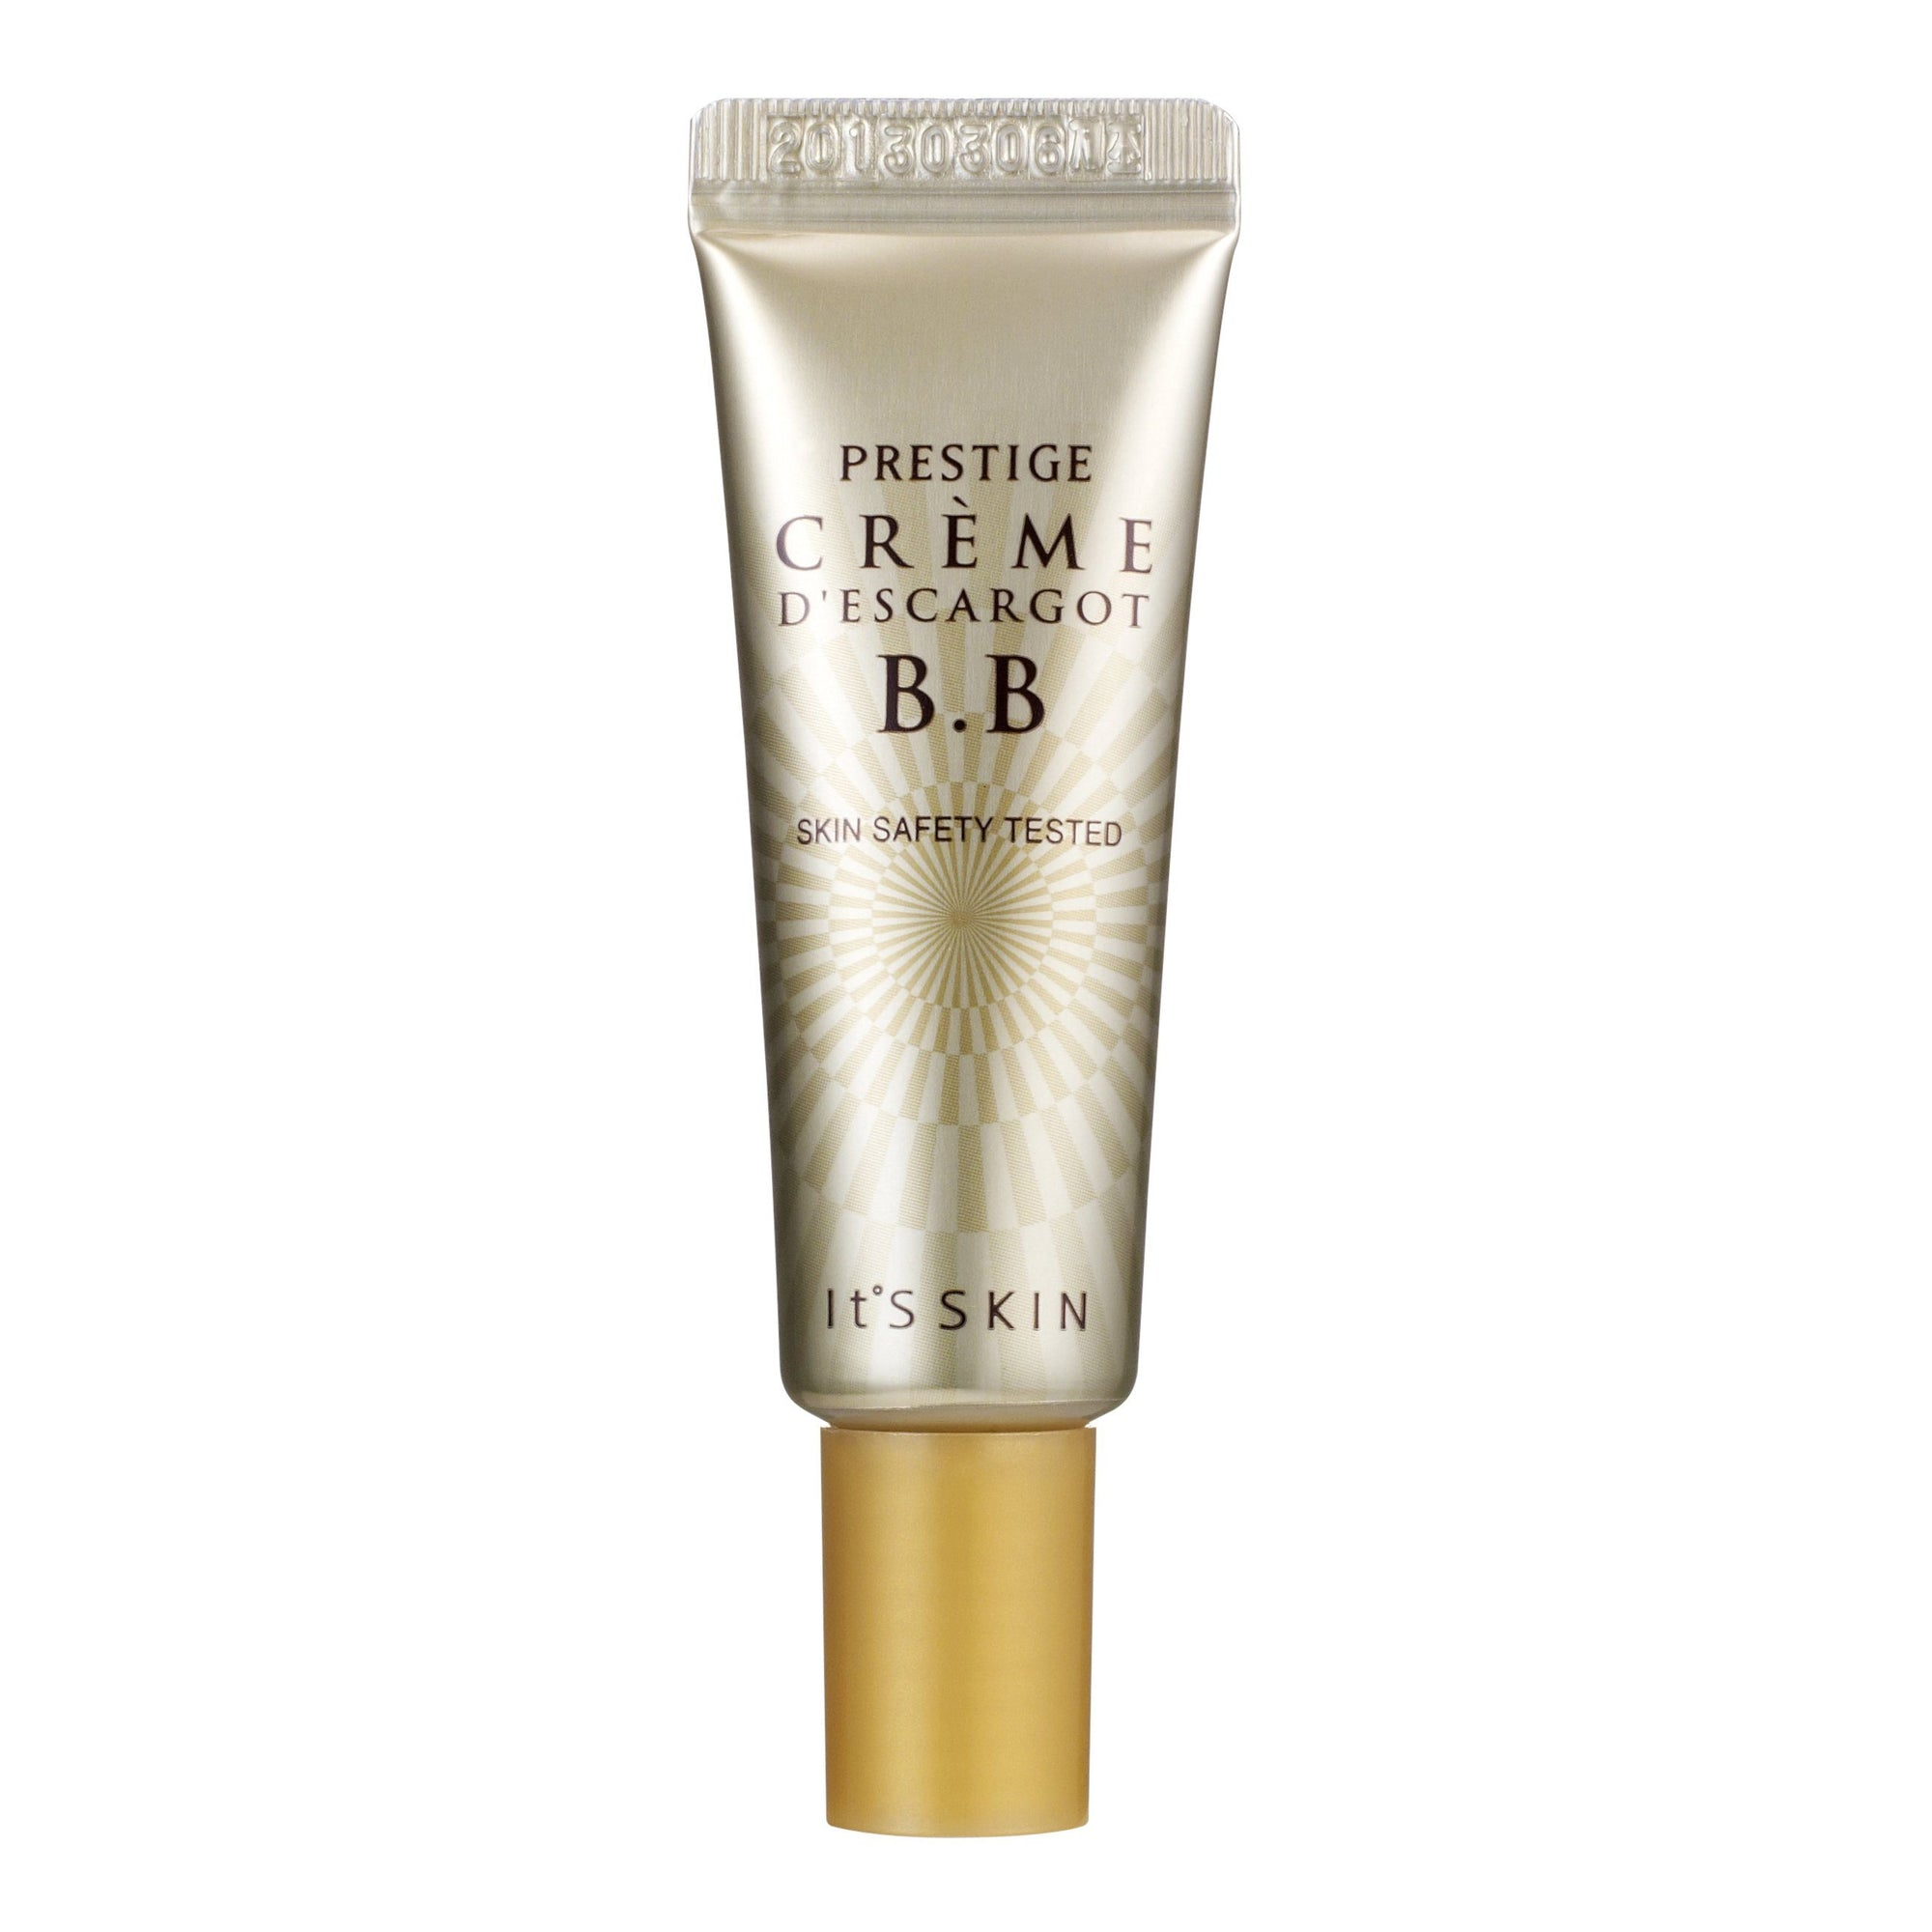 Health & Beauty > Personal Care > Cosmetics > Makeup > Face Makeup > Foundations & Concealers - Prestige Creme D'Escargot BB Krem BB (mini Size) 10 Ml